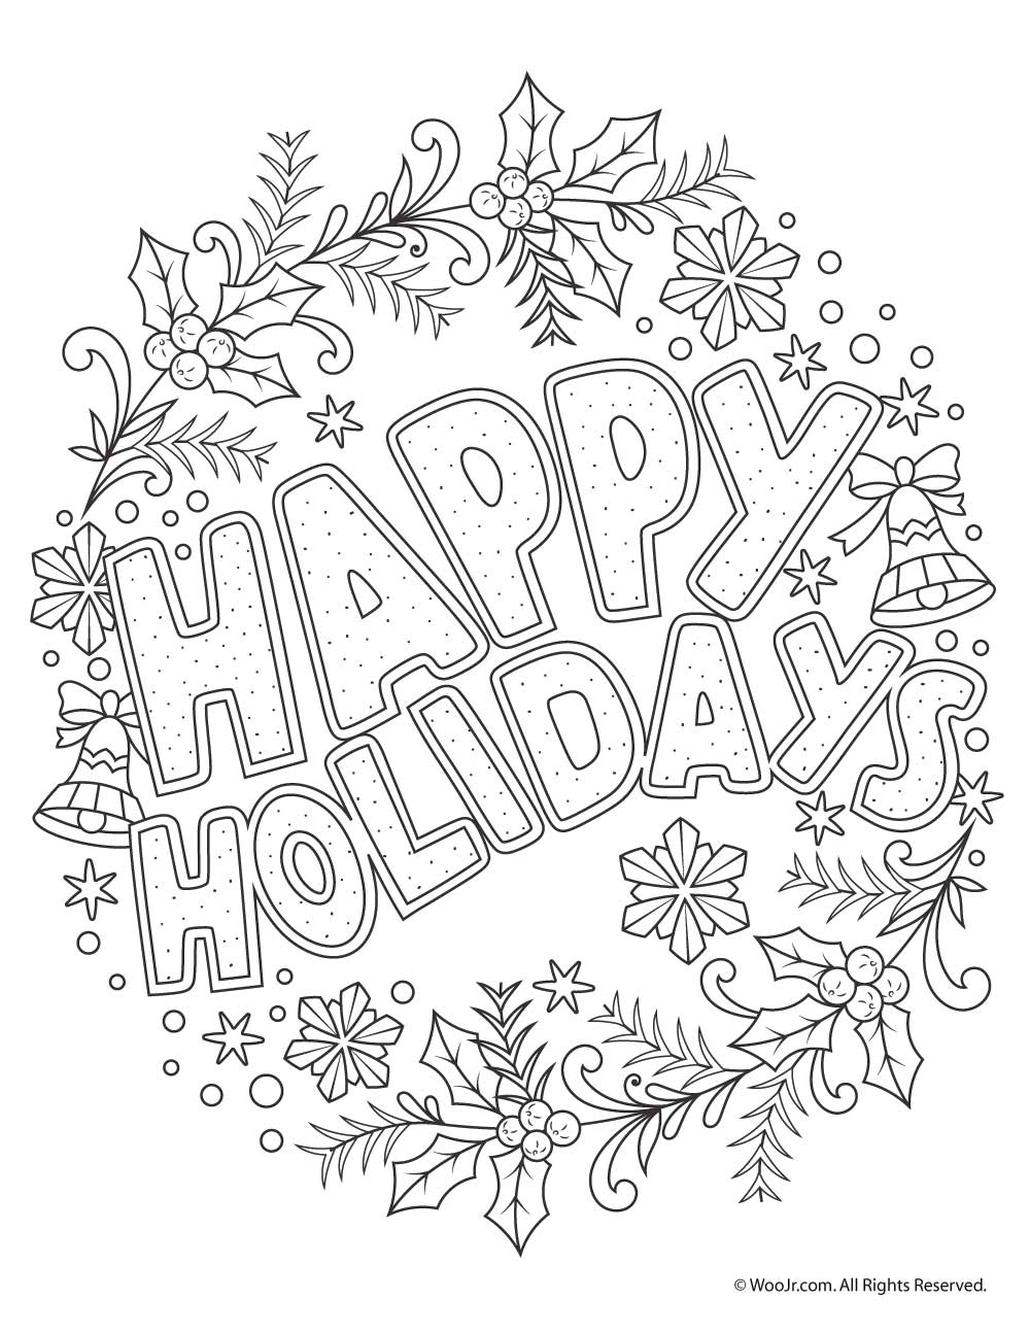 Get This Adult Christmas Coloring Pages Printable hld6